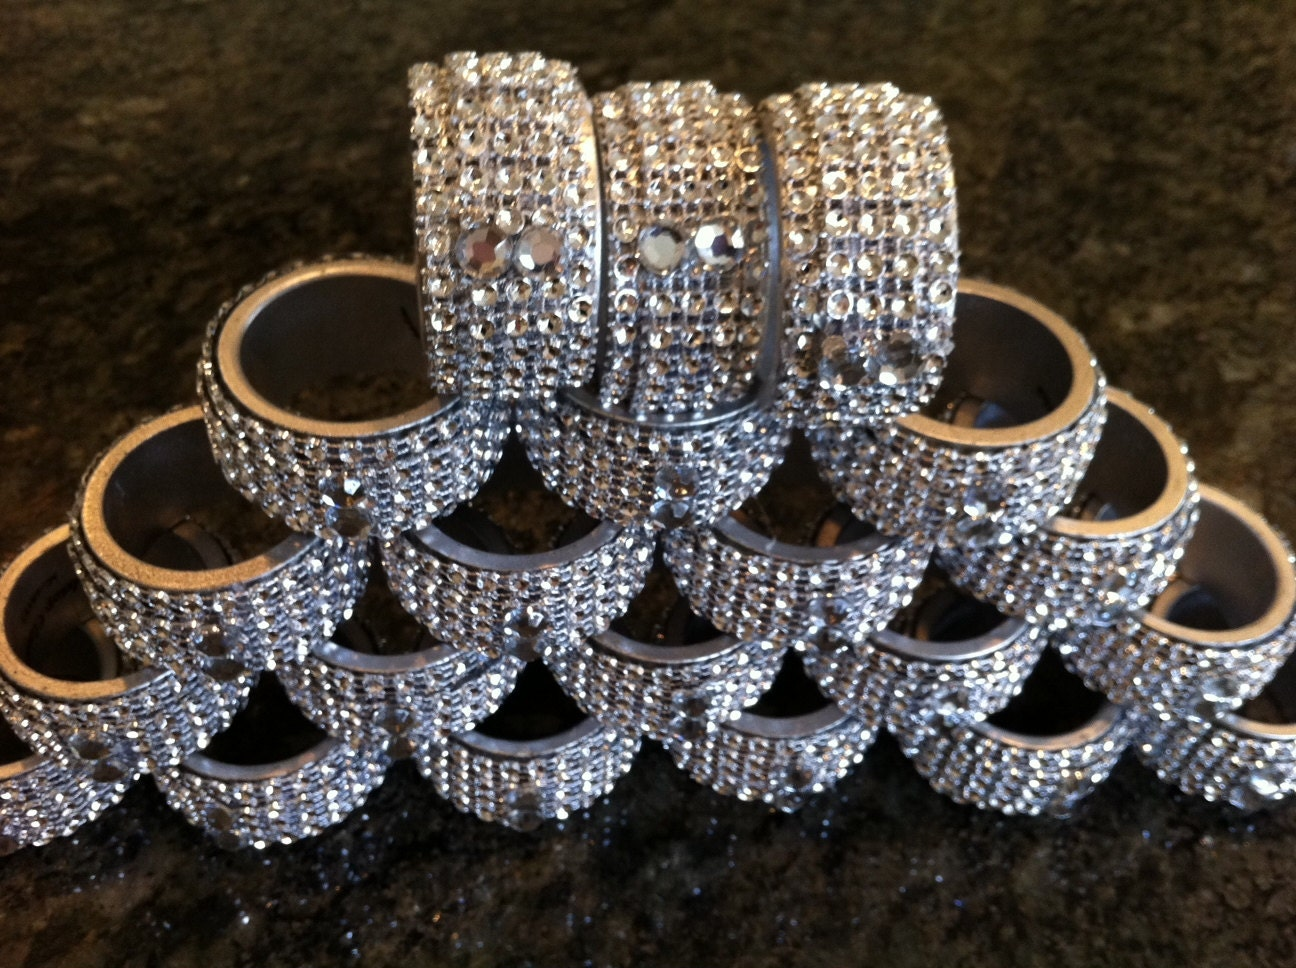 silver and bling napkin rings